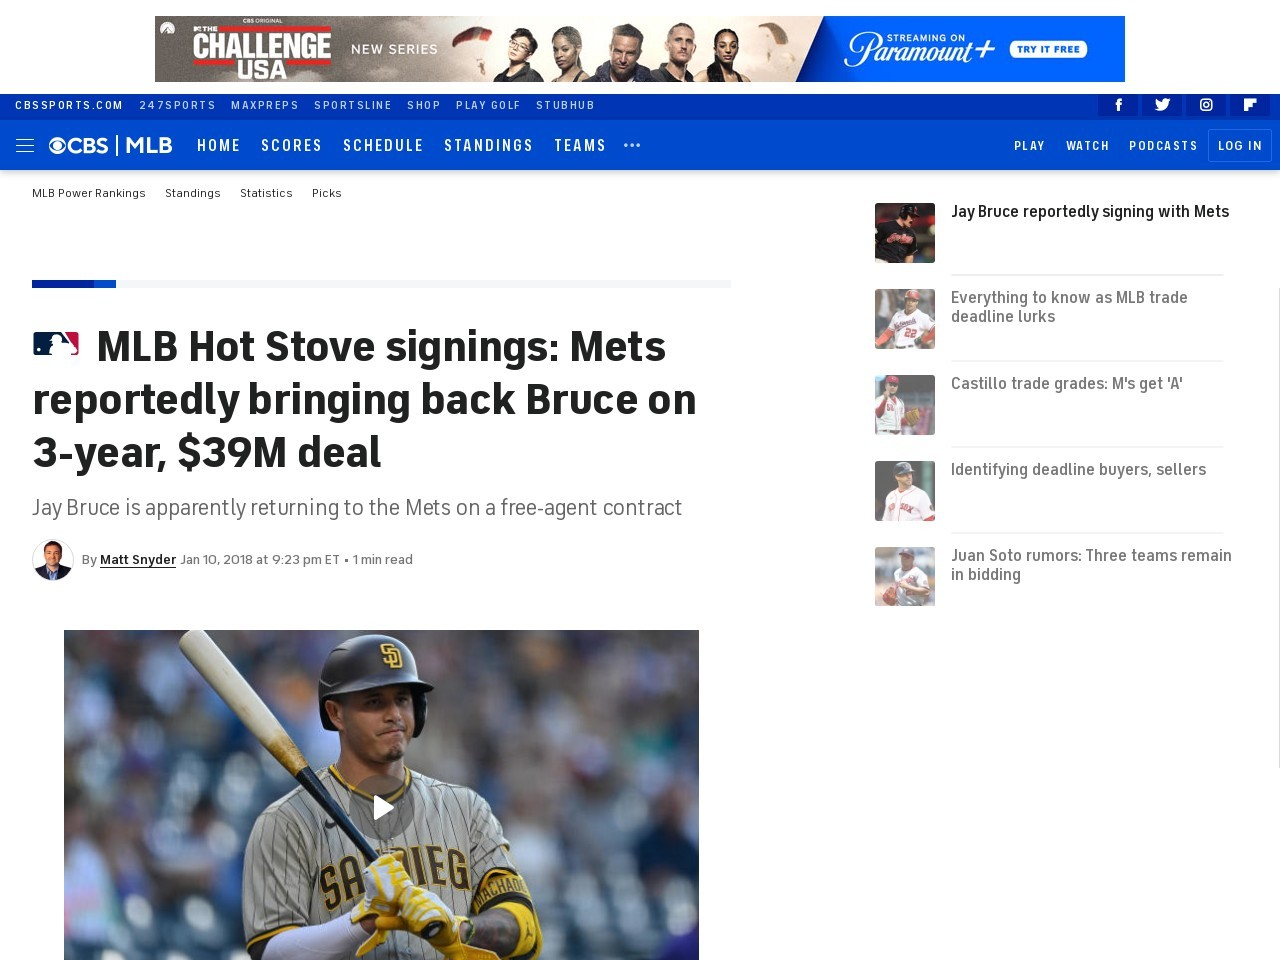 MLB Hot Stove signings: Mets reportedly bringing back Bruce on 3-year, $39M deal